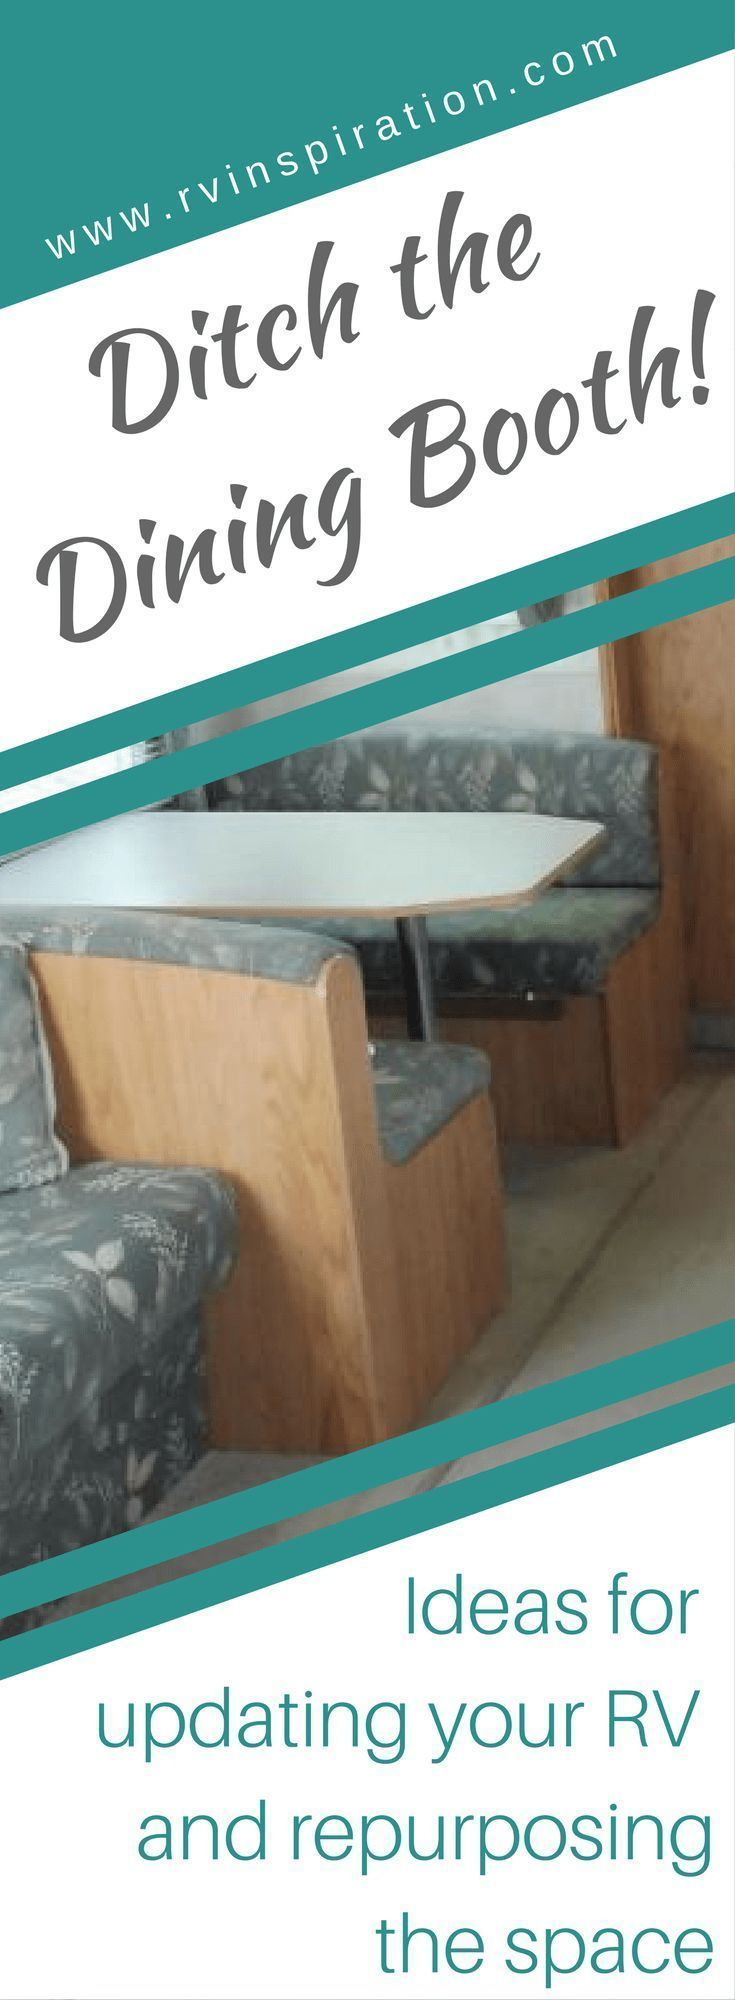 RV Owners Who Replaced Their Dining Booth | RV Inspiration The owners of these and decided to remov